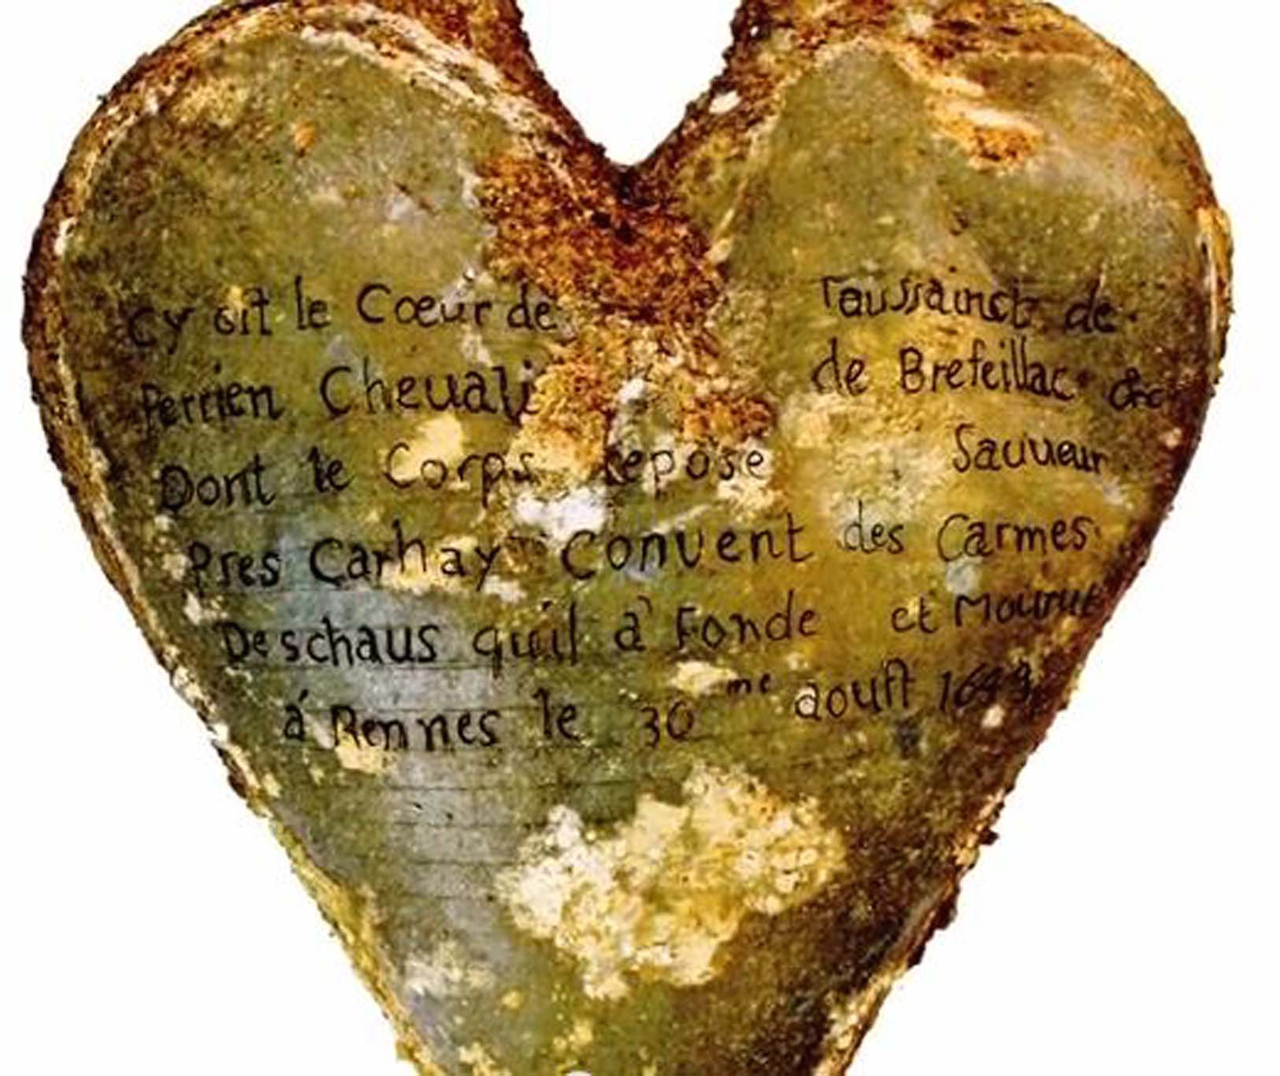 Heart-shaped lead urn with an inscription identifying the contents as the heart of Toussaint Perrien, Knight of Brefeillac.